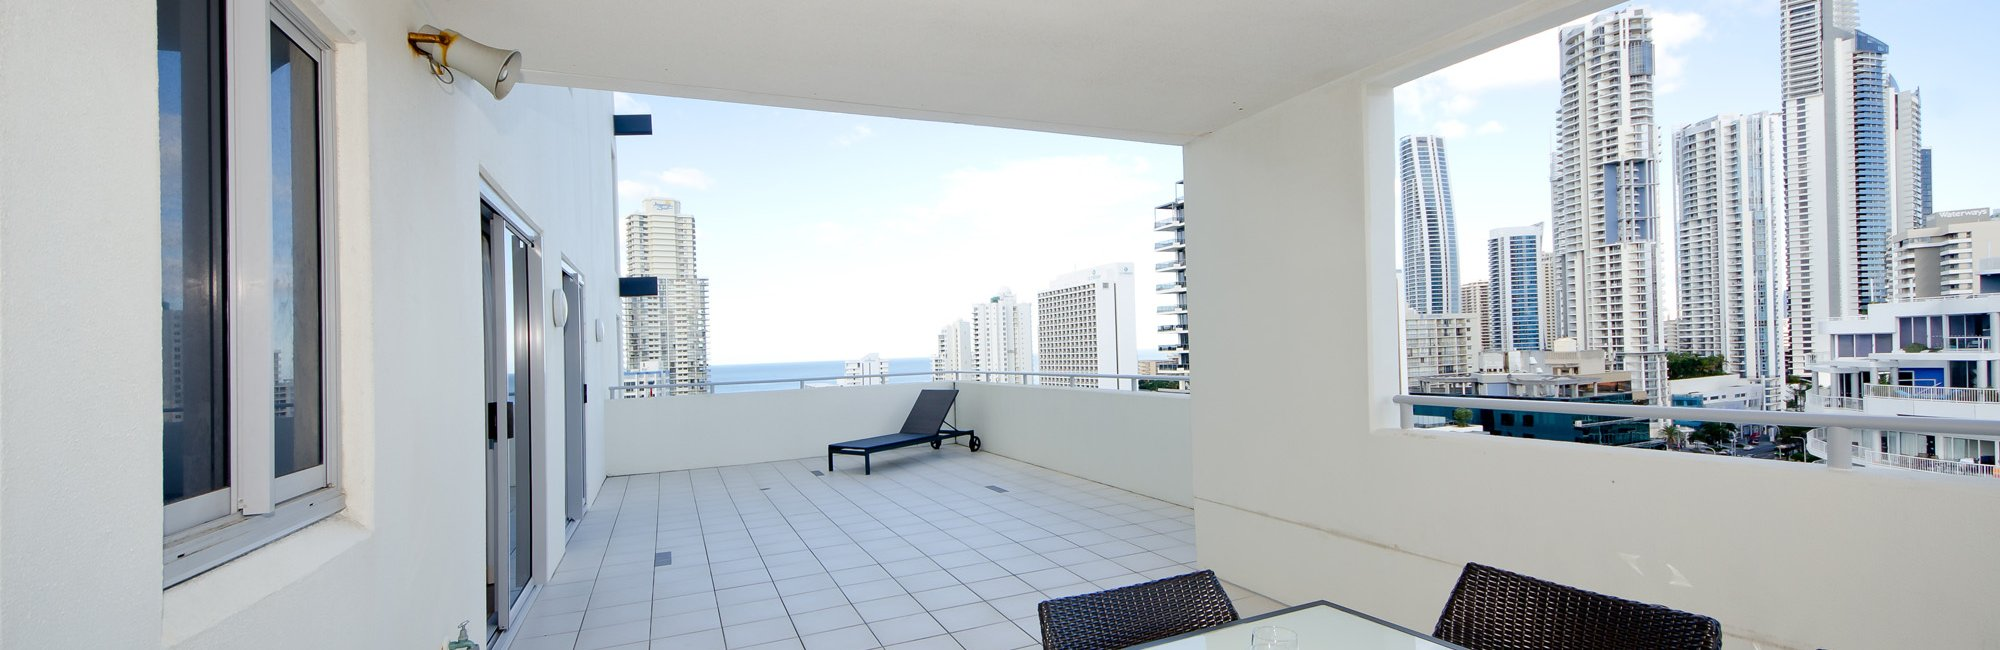 Surfers paradise luxury apartments trilogy surfers for Balcony booking